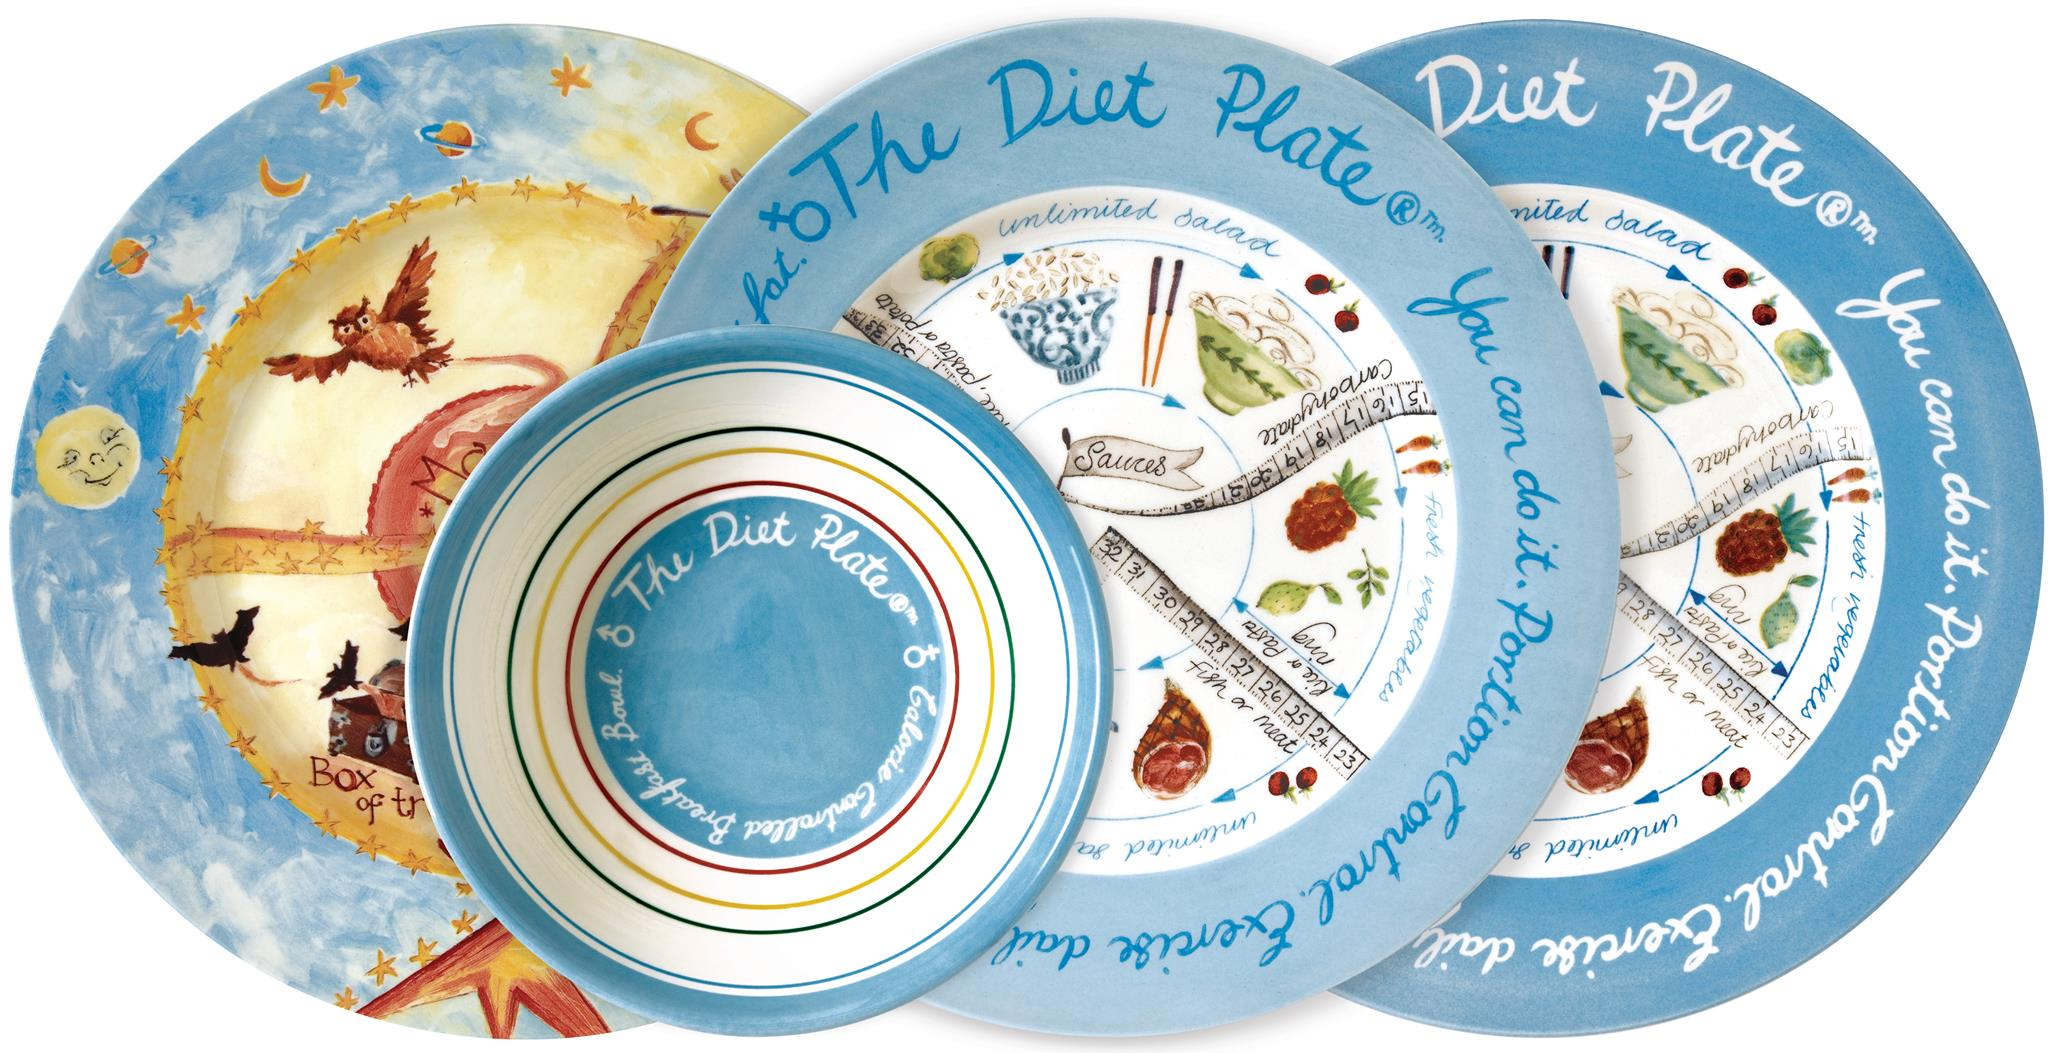 Discover portion control and lose weight with The Diet Plate